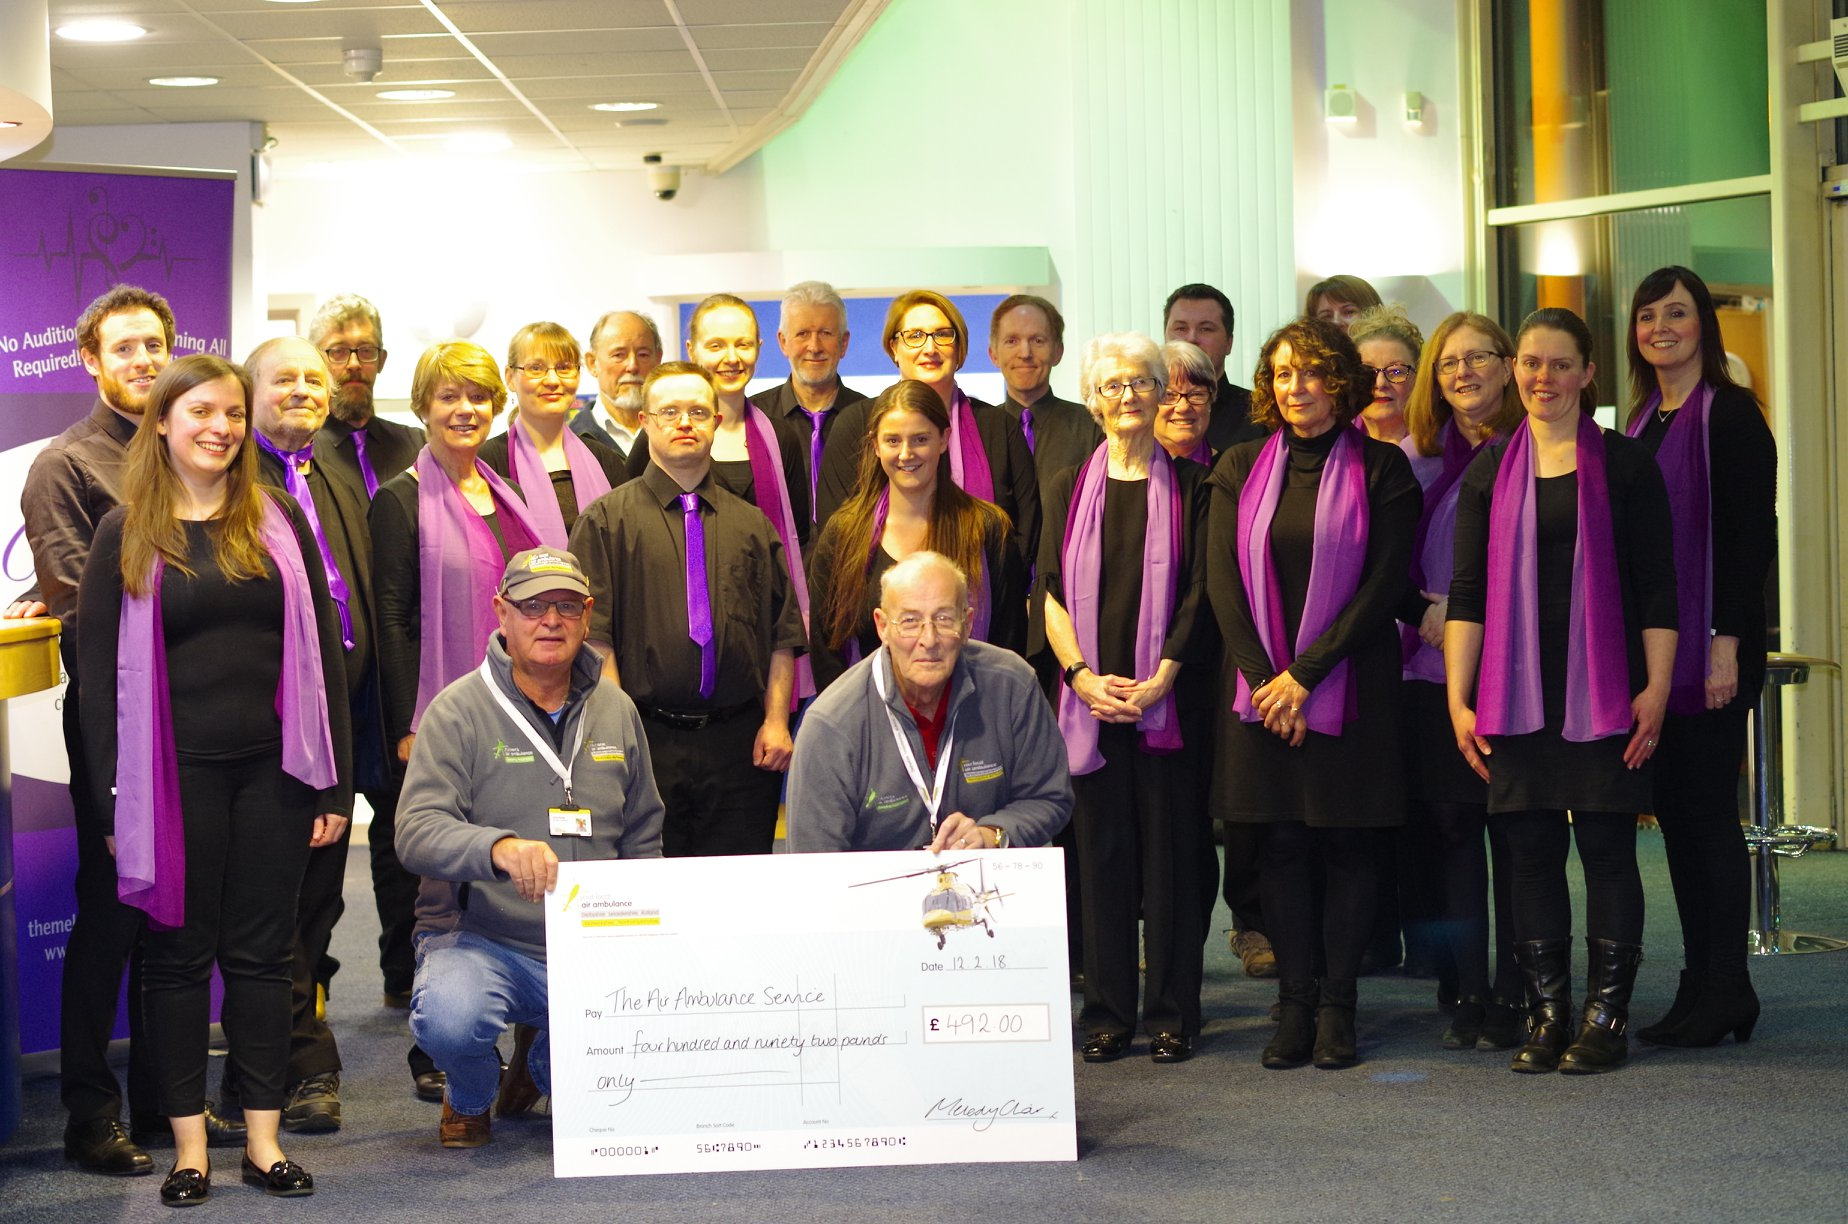 Melody Choir handing over their cheque with funds raised for Air Ambulance